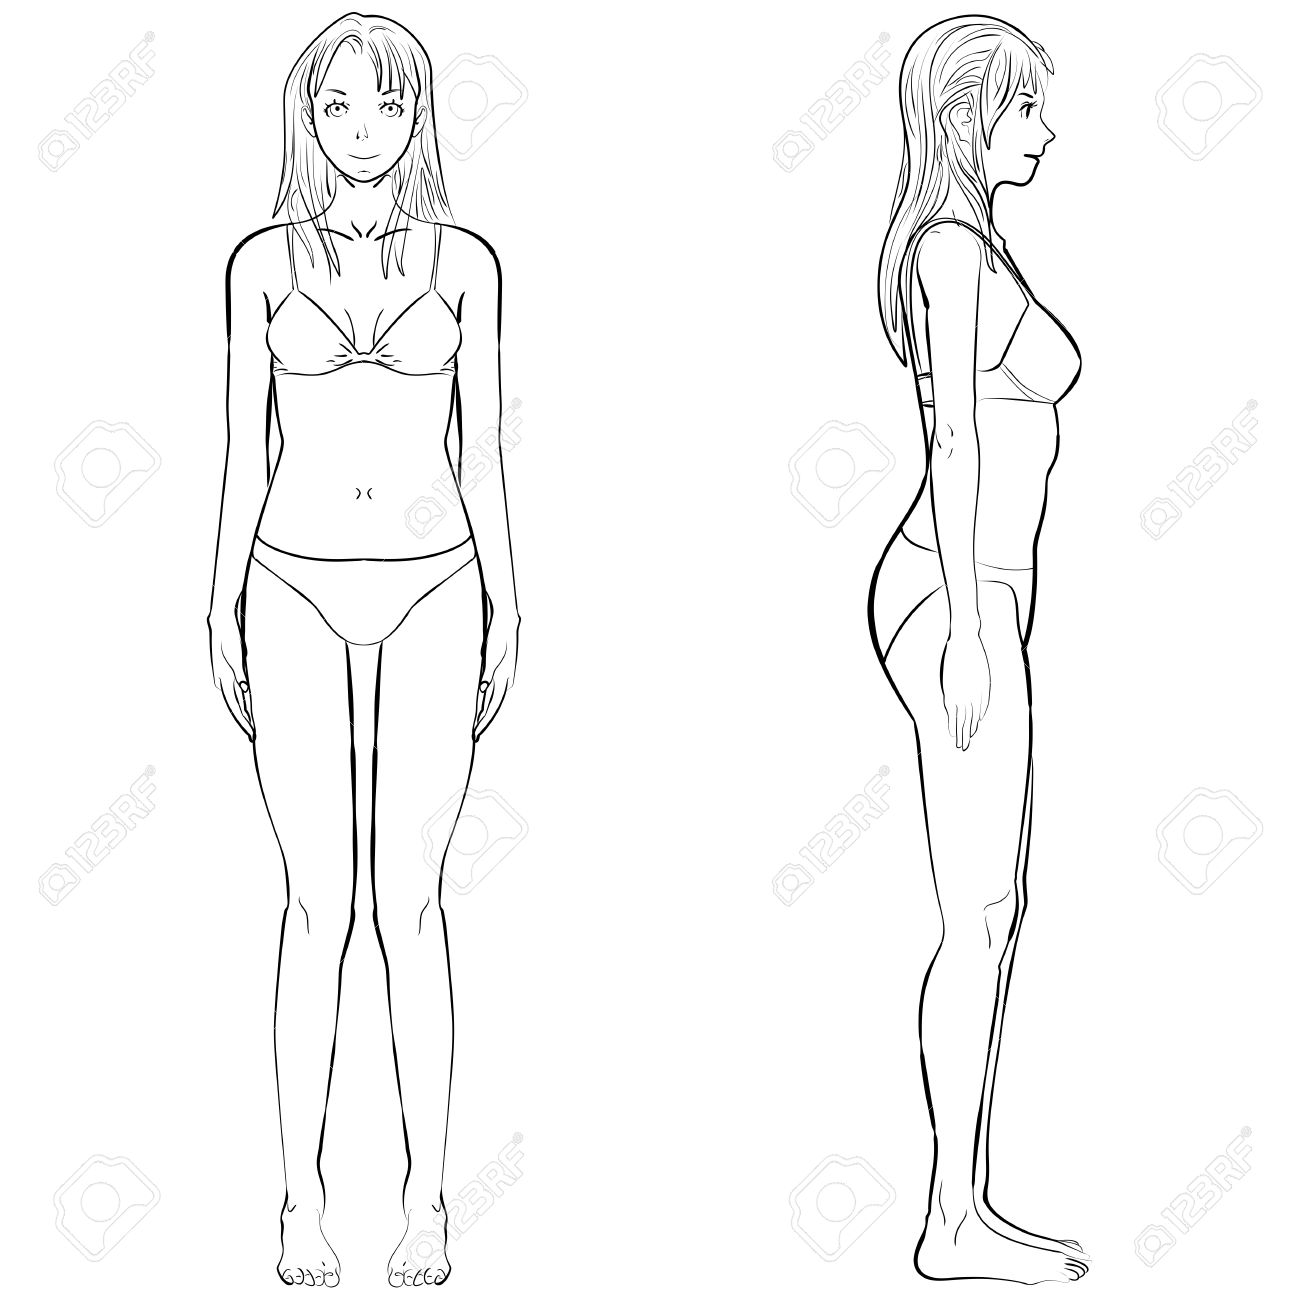 Sketch Template Girl Illustration Woman Body Front And Side View In Outline Stock Vector